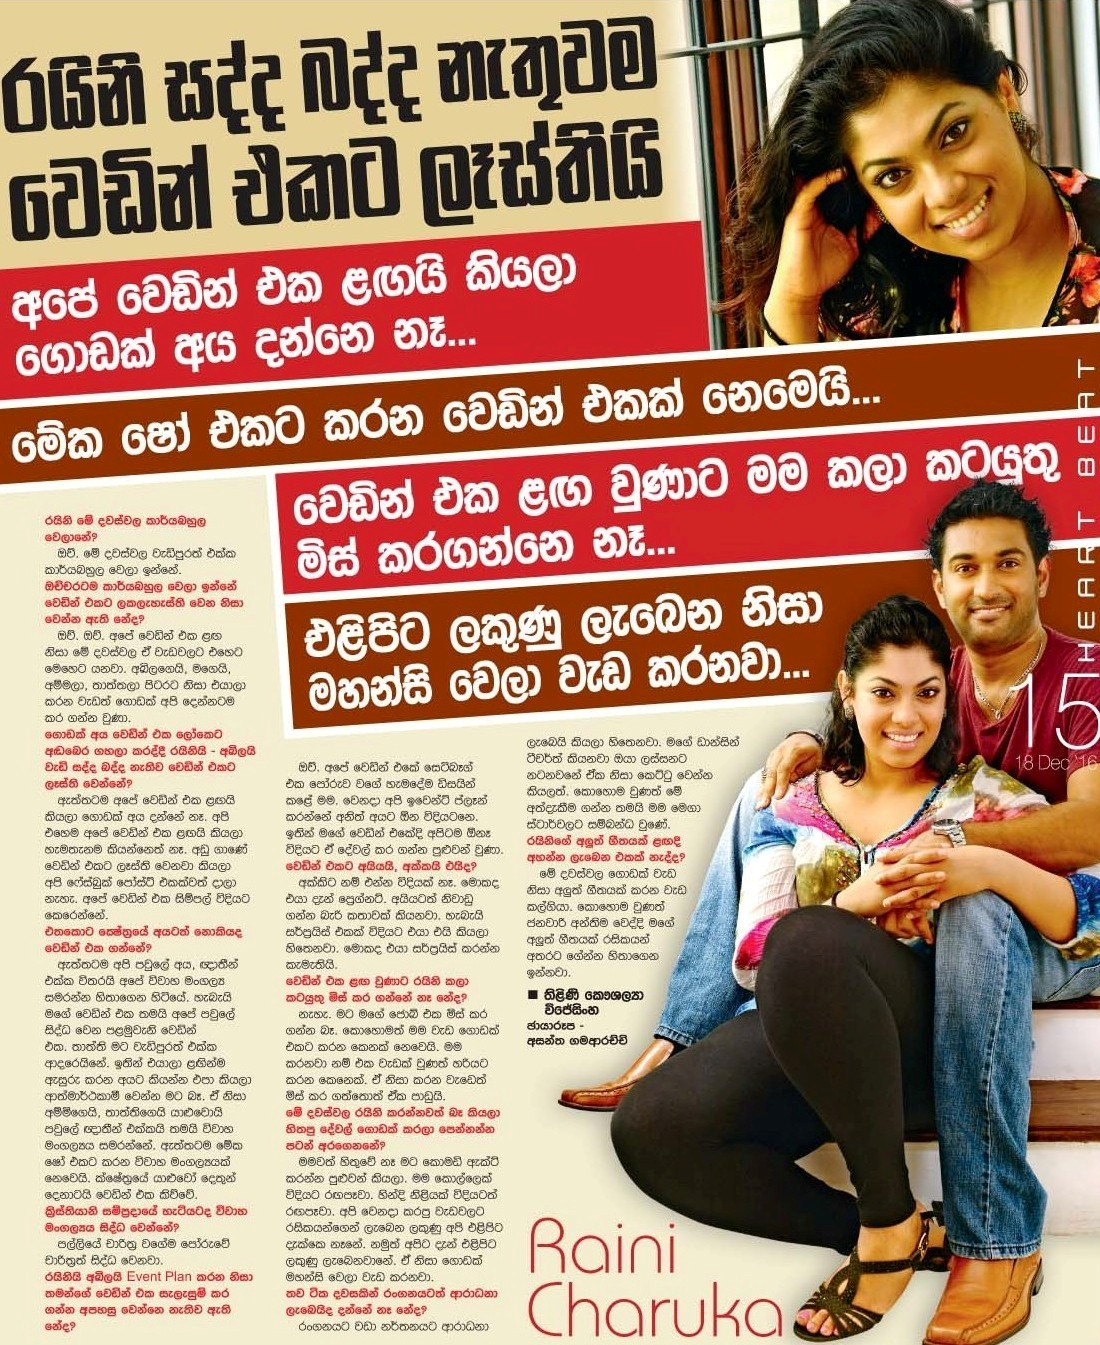 Raini Charuka Speaks about her Wedding | Gossip Lanka Hot News